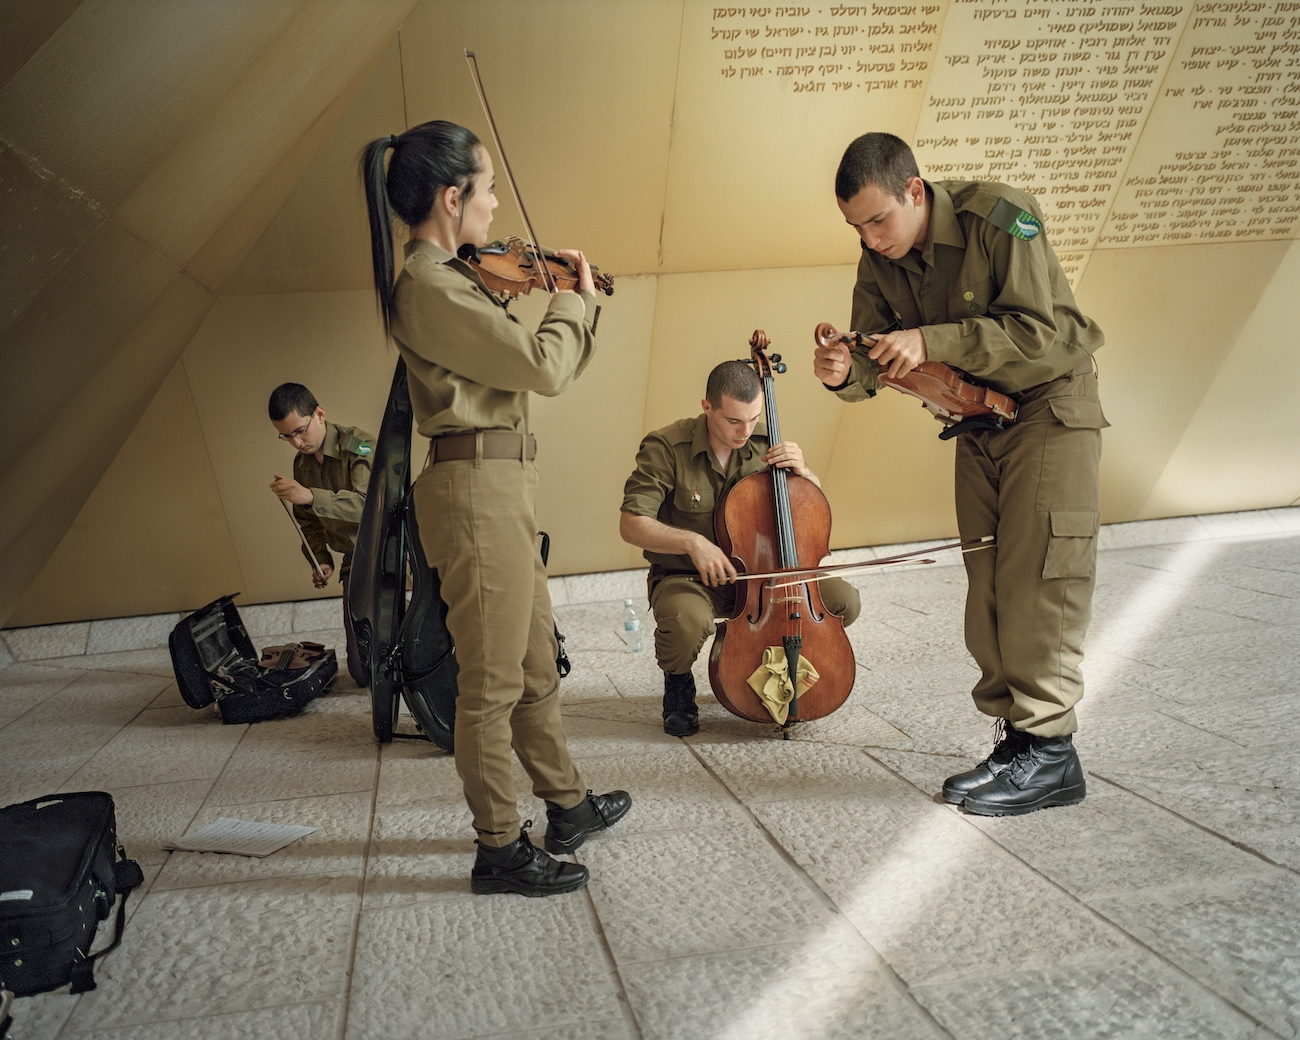 April 30, 2017. Jerusalem, Israel. On the day before the Memorial Day for the Fallen Israeli Soldiers and Victims of Terrorism, Yom Hazikaron, army musicians prepare for a performance.